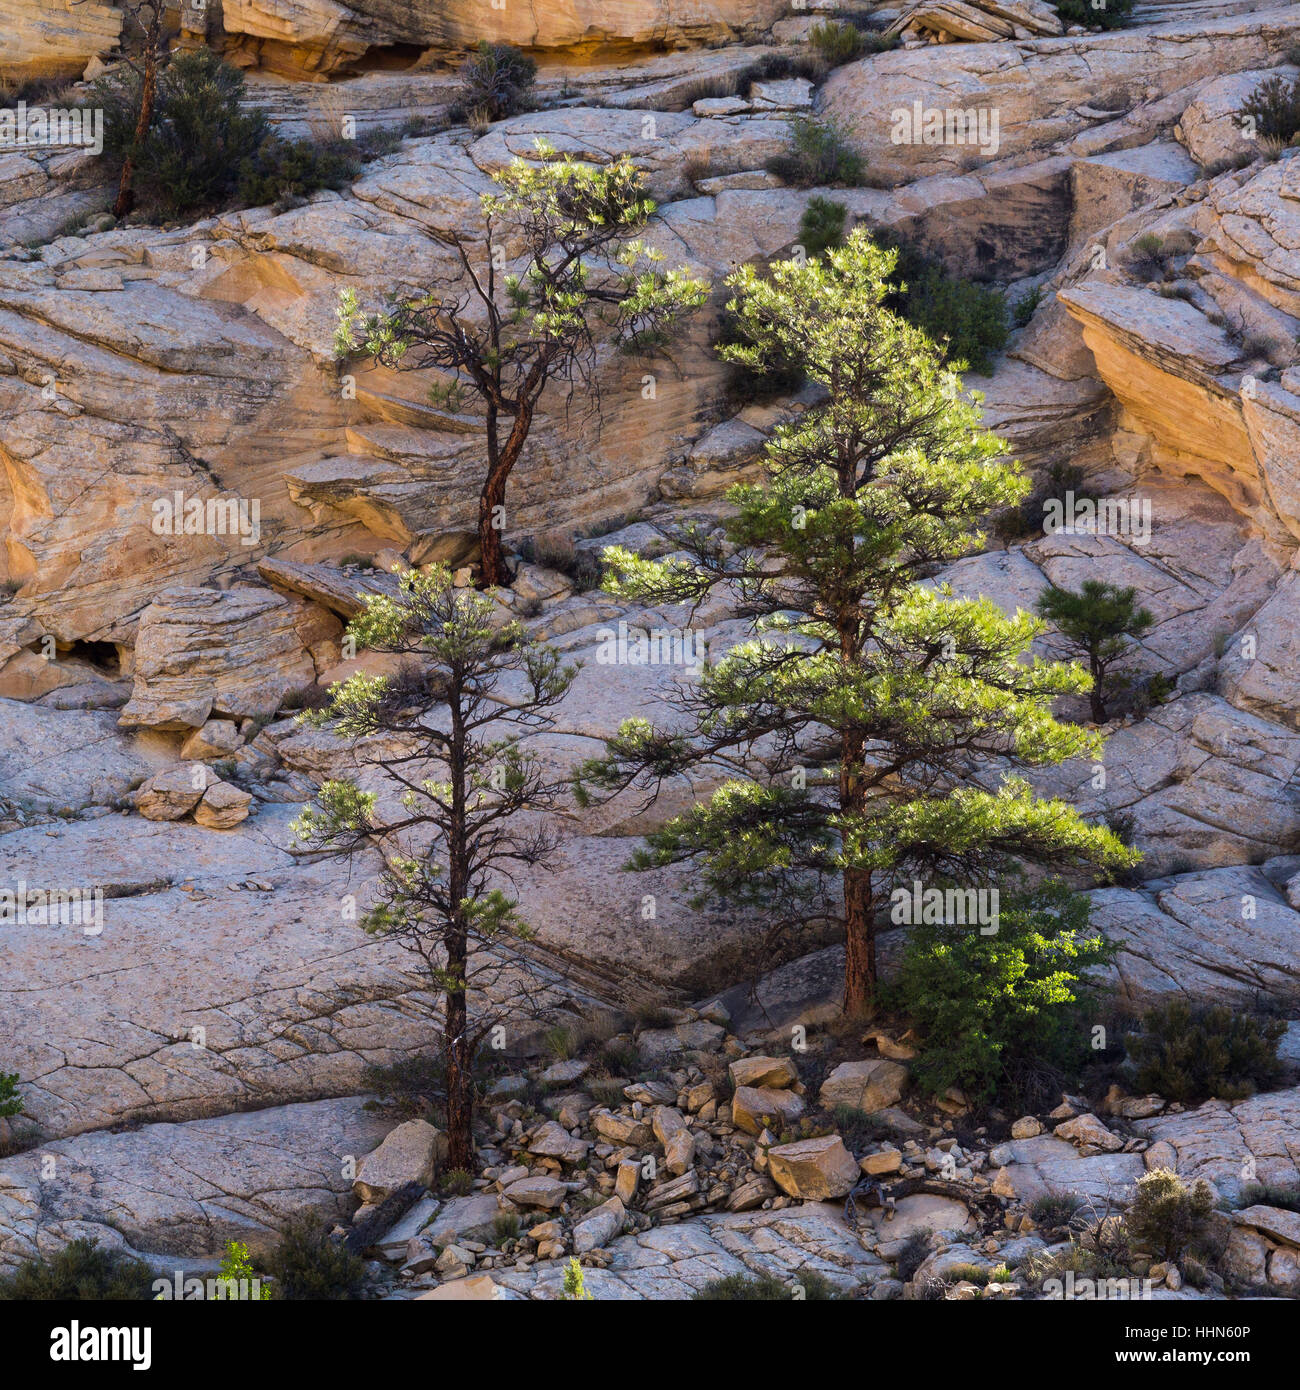 Ponderosa pine trees clinging to slickrock along the Escalante River Trail. Grand Staircase-Escalante National Monument, - Stock Image